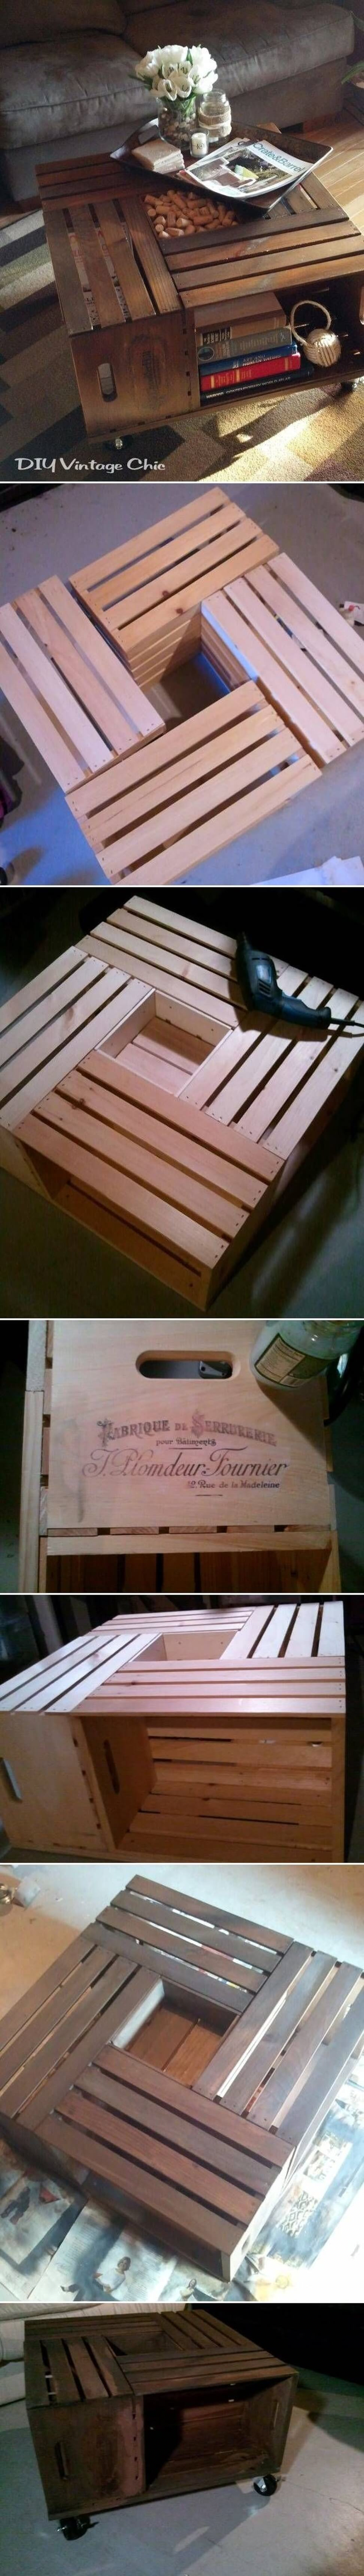 Vintage Wood Crate Coffee Table